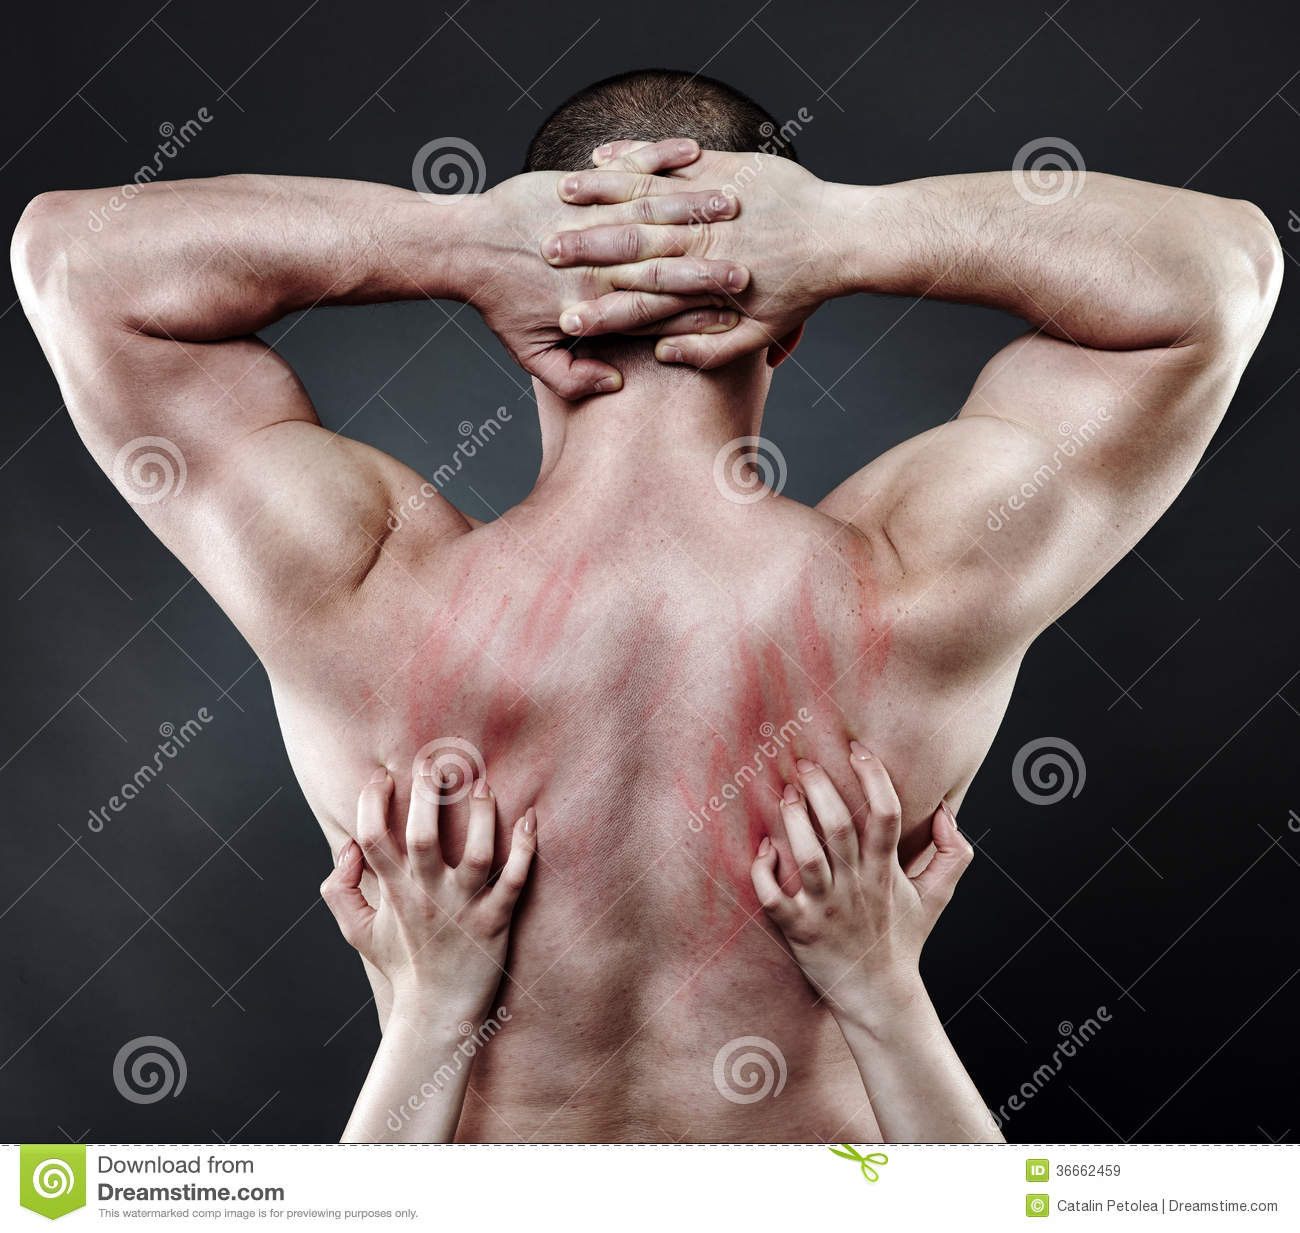 Hot scene stock image. Image of conceptual, hands, muscle - 36662459